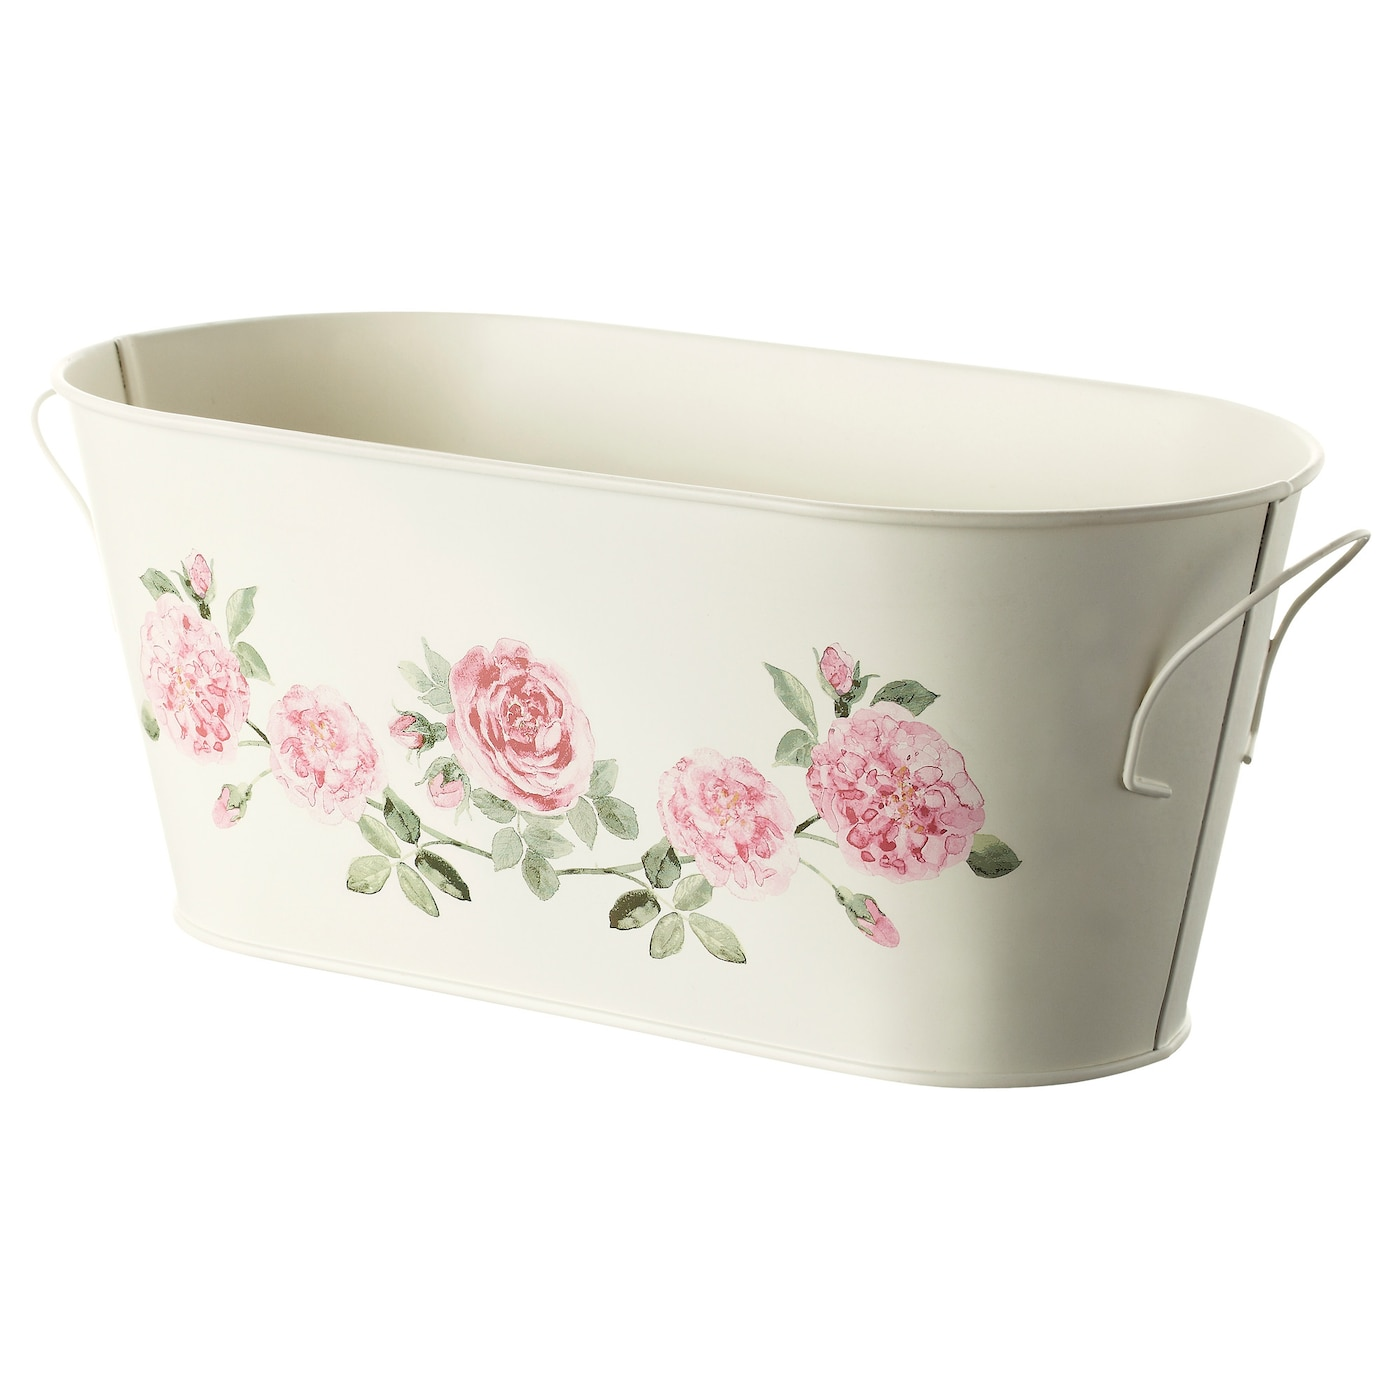 IKEA ROSÉPEPPAR plant pot with handles